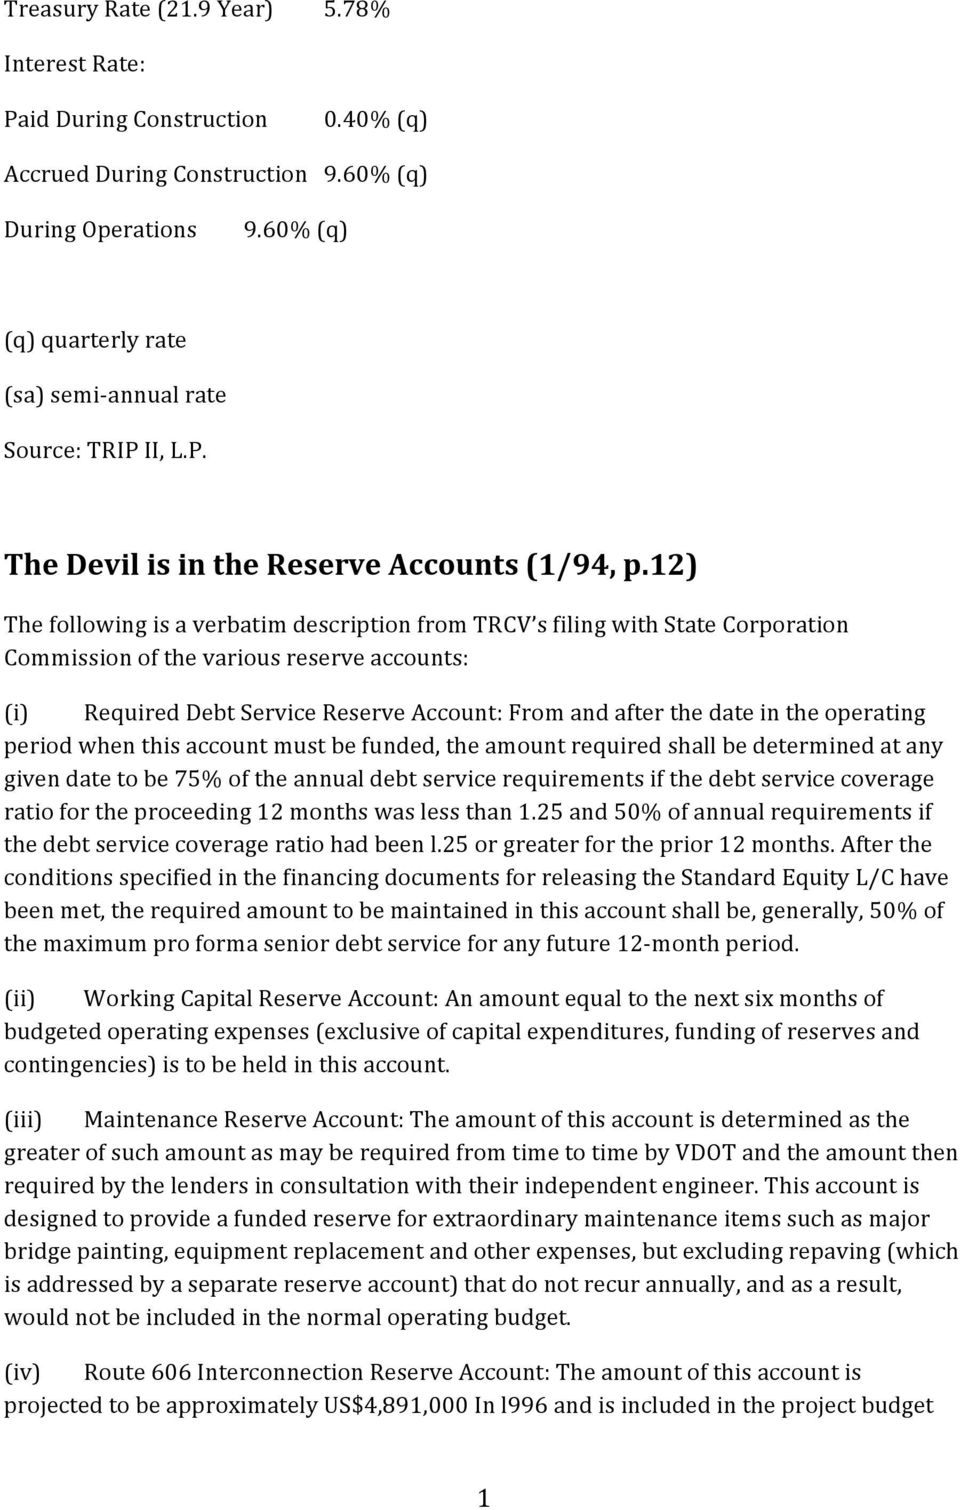 12) The following is a verbatim description from TRCV s filing with State Corporation Commission of the various reserve accounts: (i) Required Debt Service Reserve Account: From and after the date in